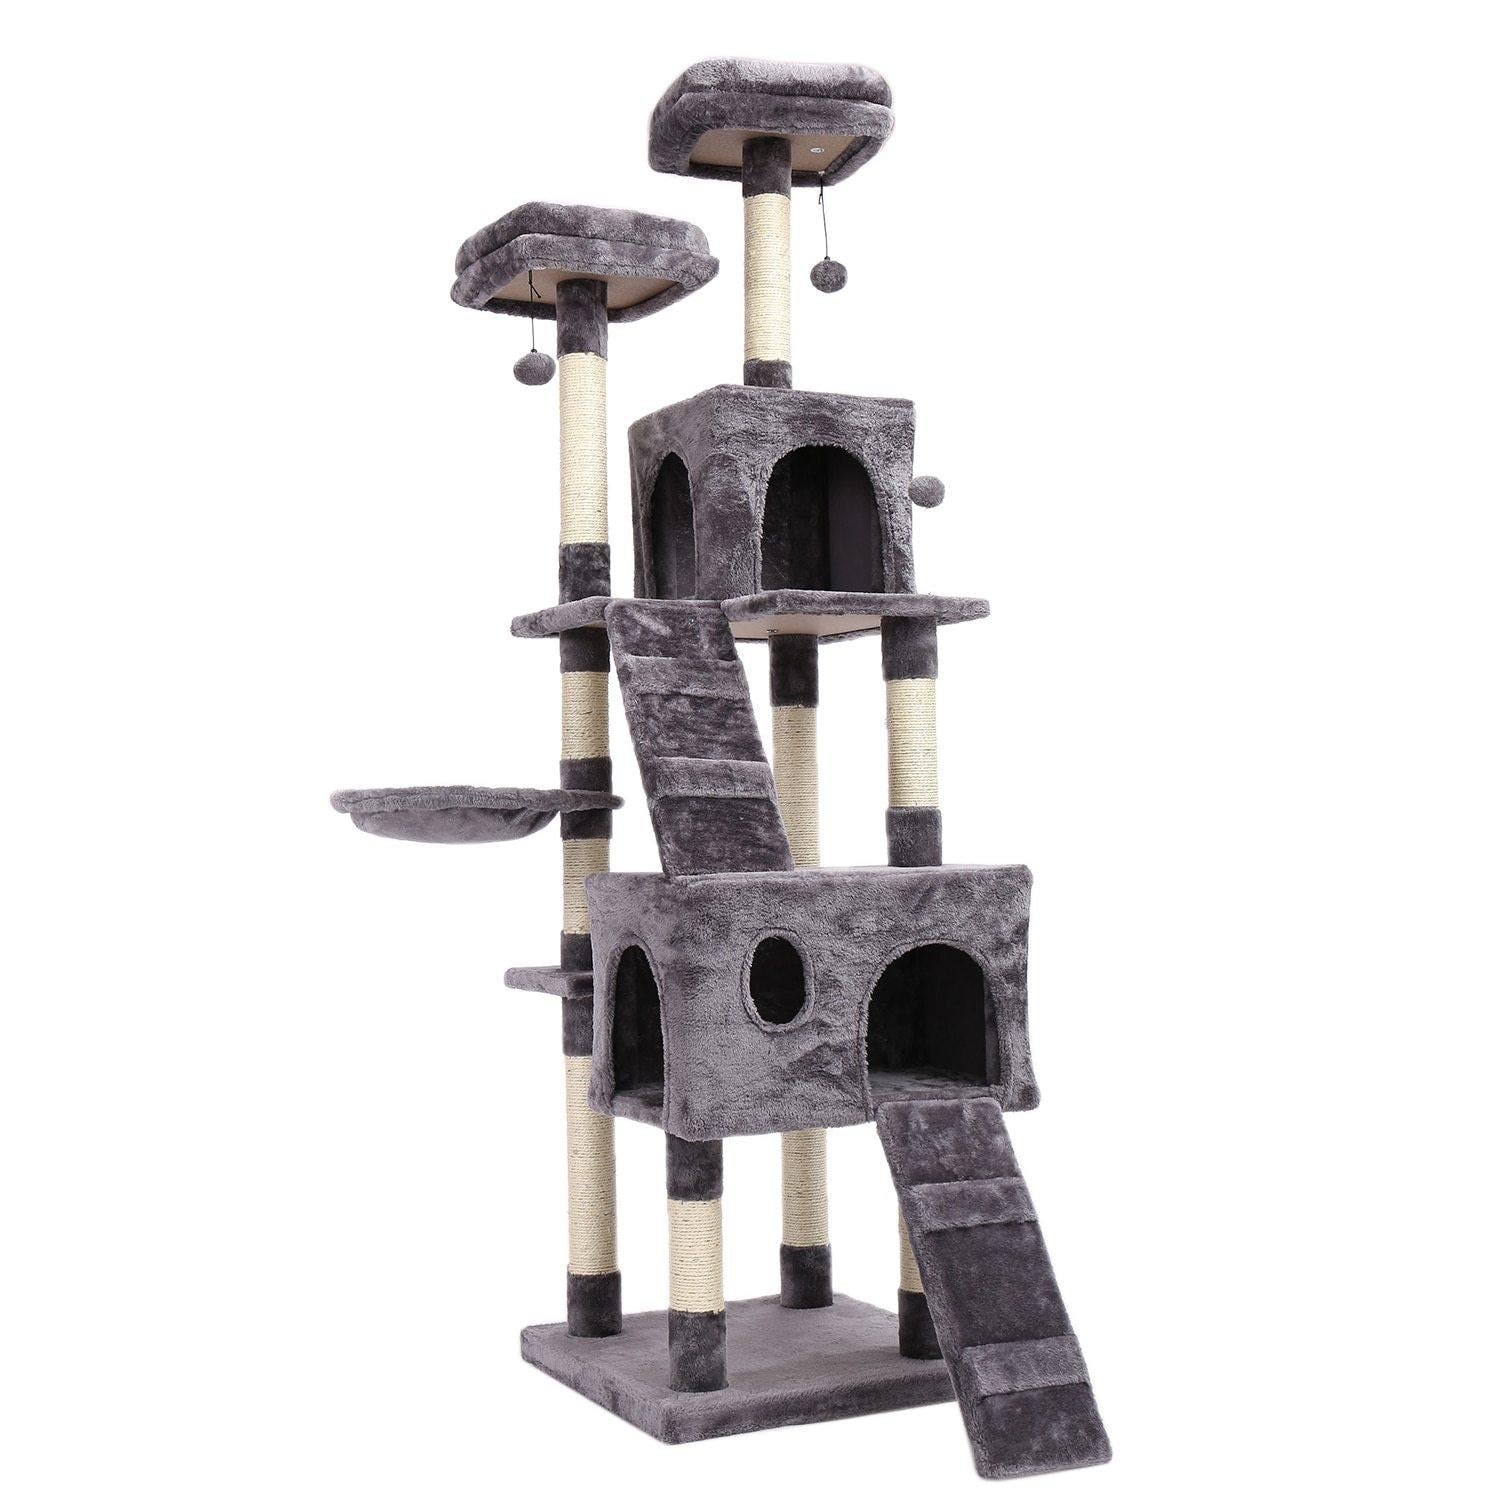 Large Cat Tree-Playing-Alfy & Co-Gray-Alfy & Co